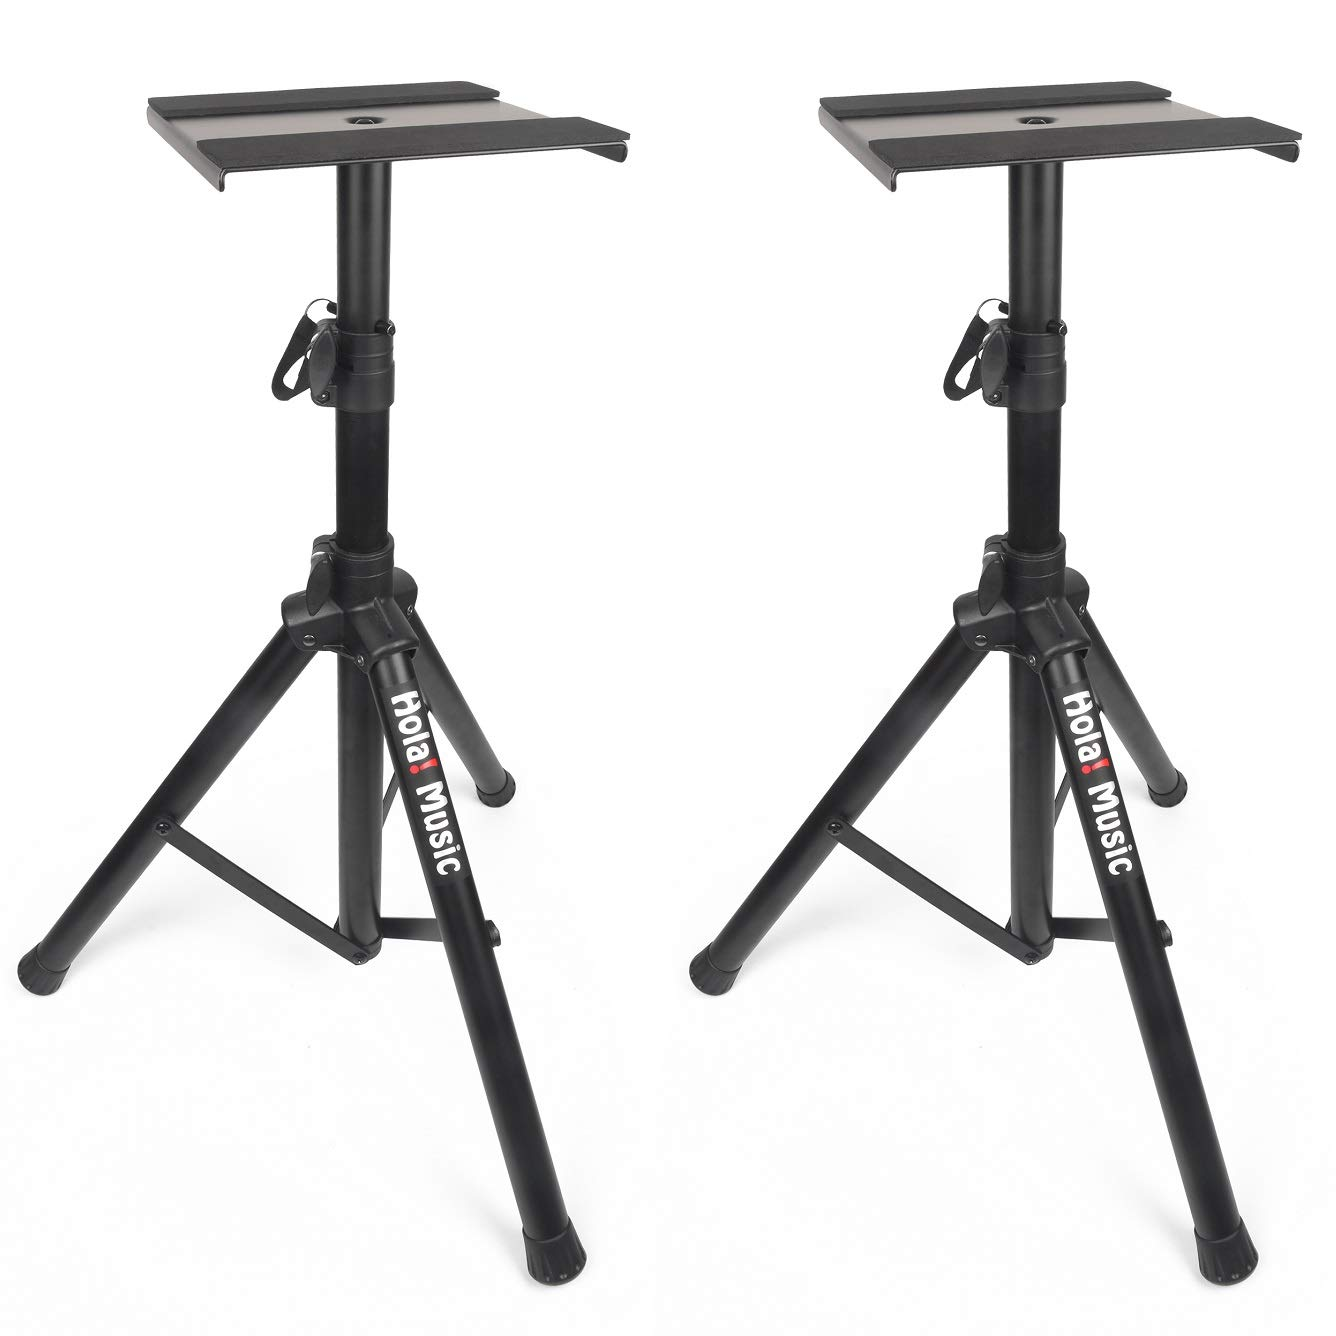 PAIR of Studio Monitor Speaker Stands by Hola! Music, Professional Heavy-Duty Tripod Structure, Adjustable Height, Model HPS-600MS by Hola! Music (Image #1)